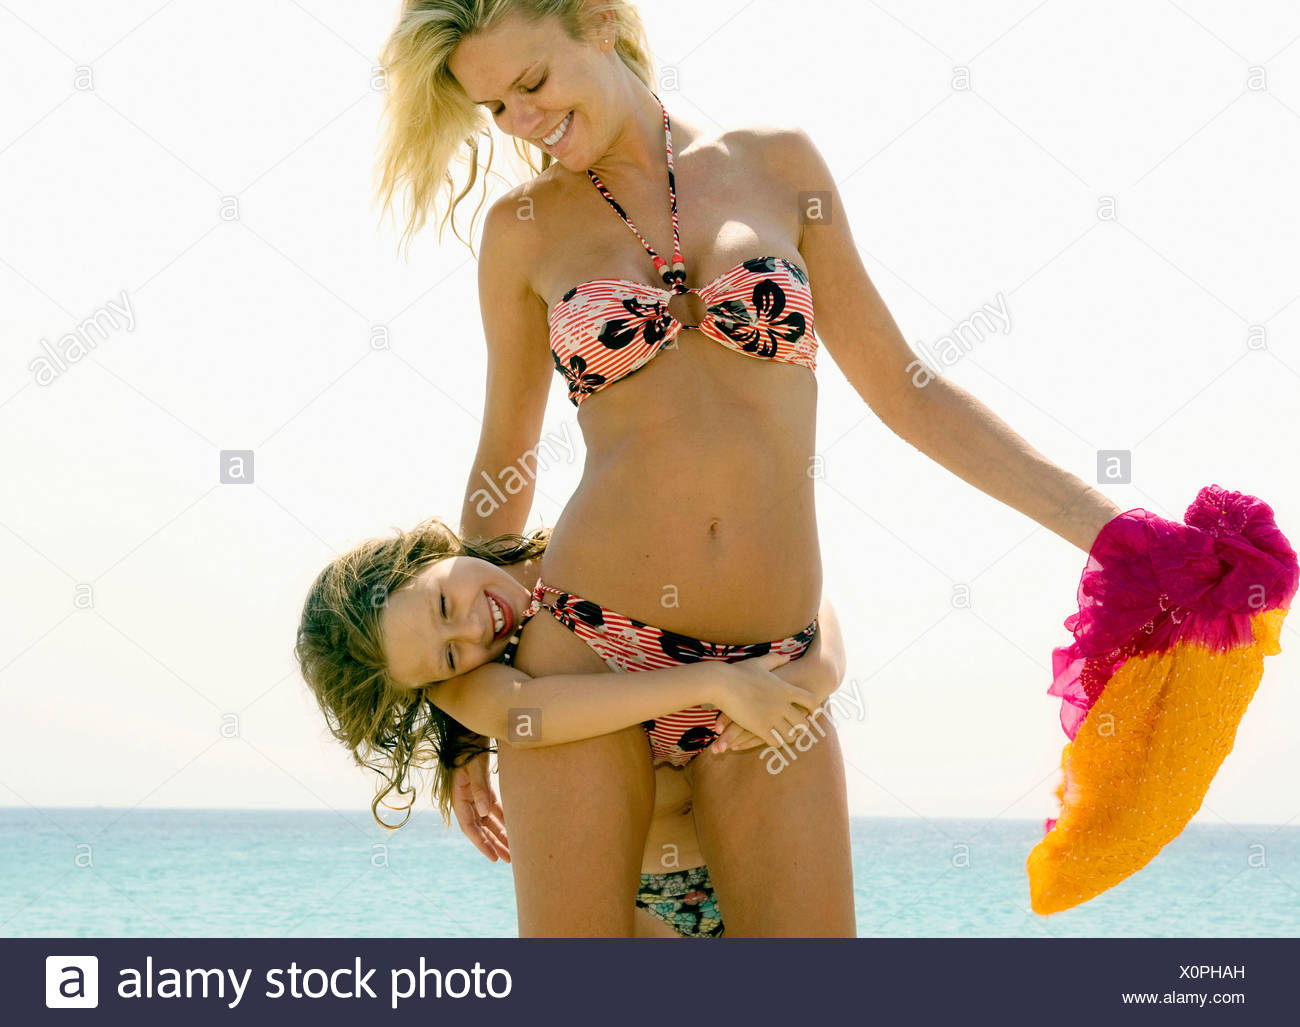 Woman and young girl being playful at the beach smiling. Stock Photo